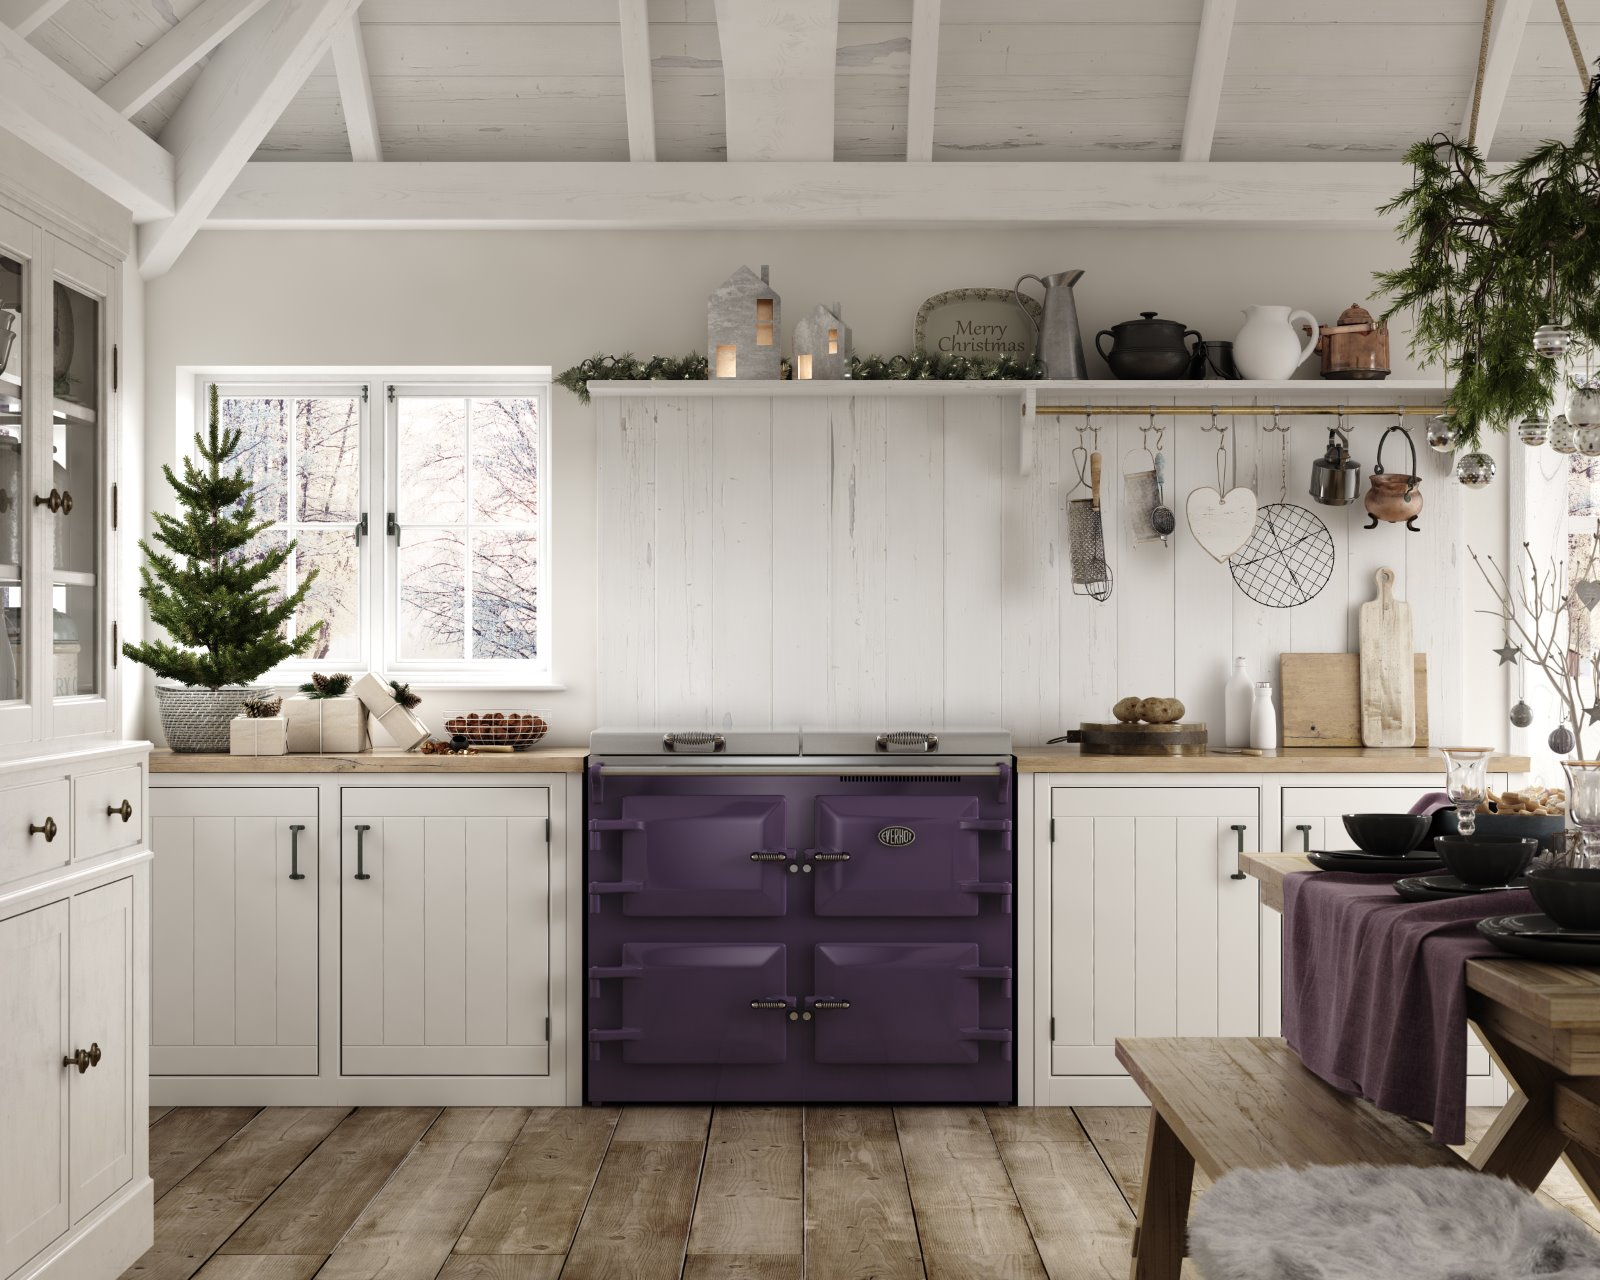 Christmas scandinavian hygge decor kitchen CGI